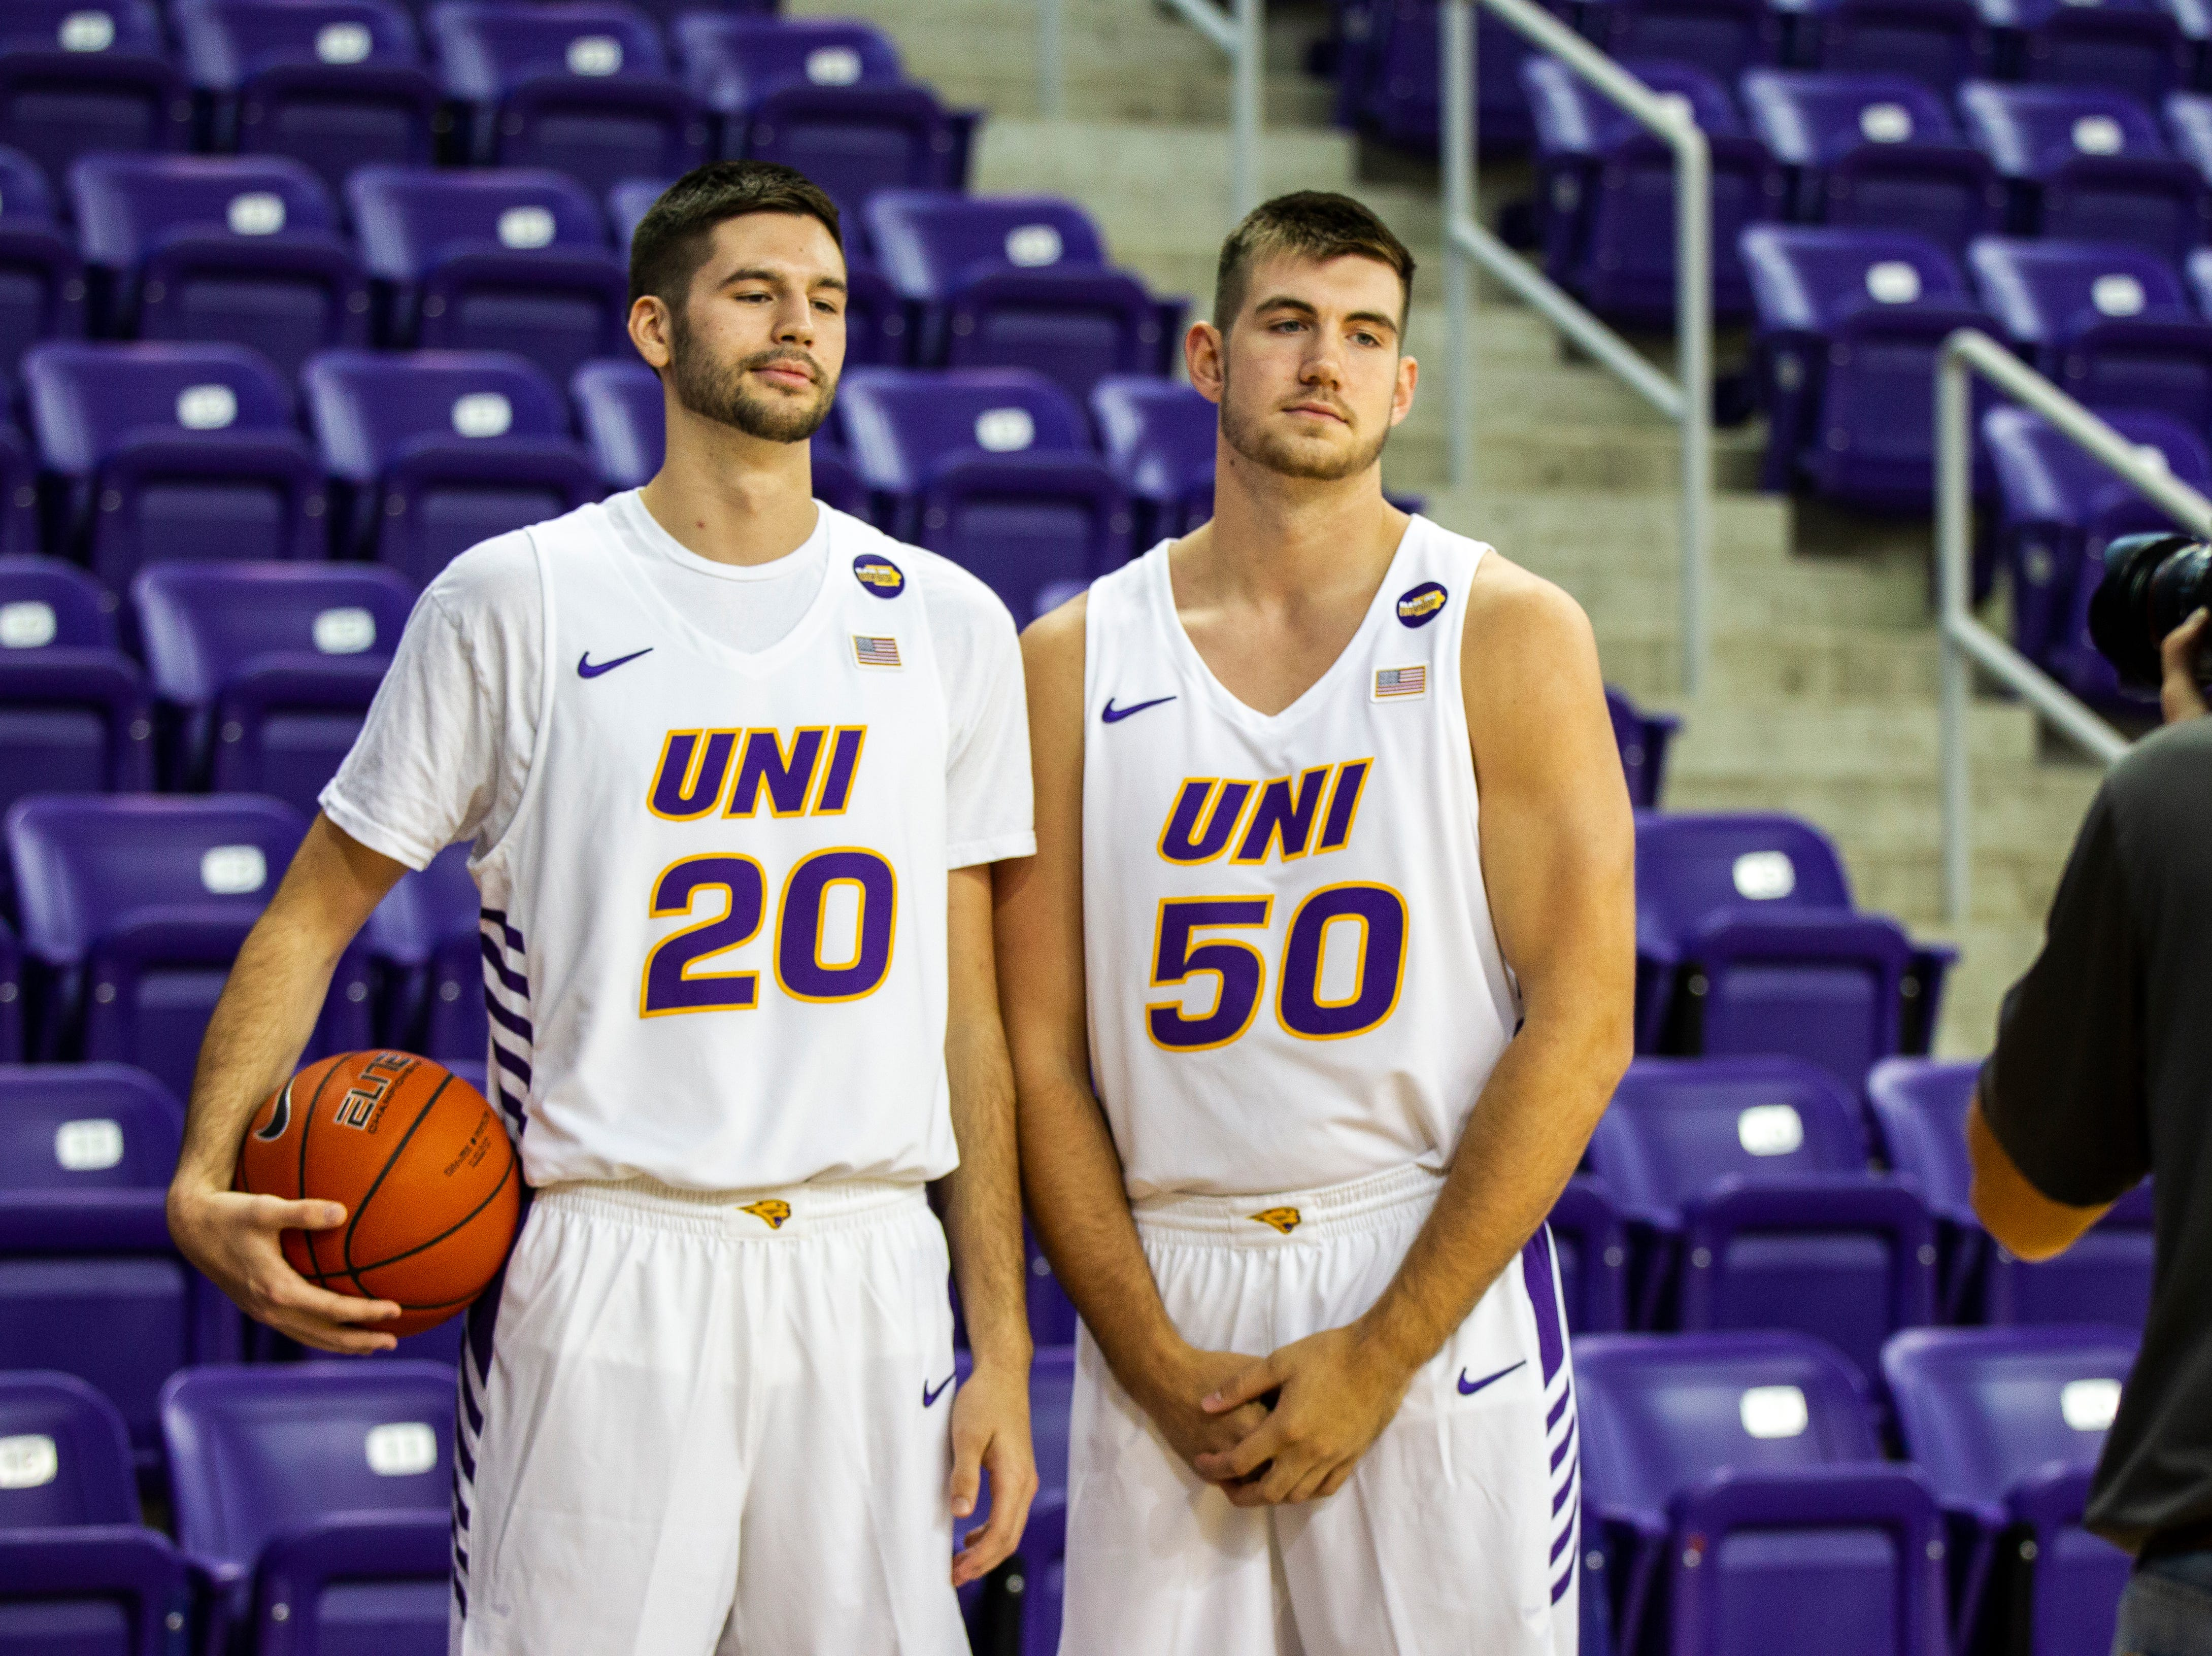 Northern Iowa forwards Shandon Goldman (20) and Austin Phyfe (50) pose for a photo during Panthers men's basketball media day on Wednesday, Oct. 17, 2018, at the McLeod Center in Cedar Falls.